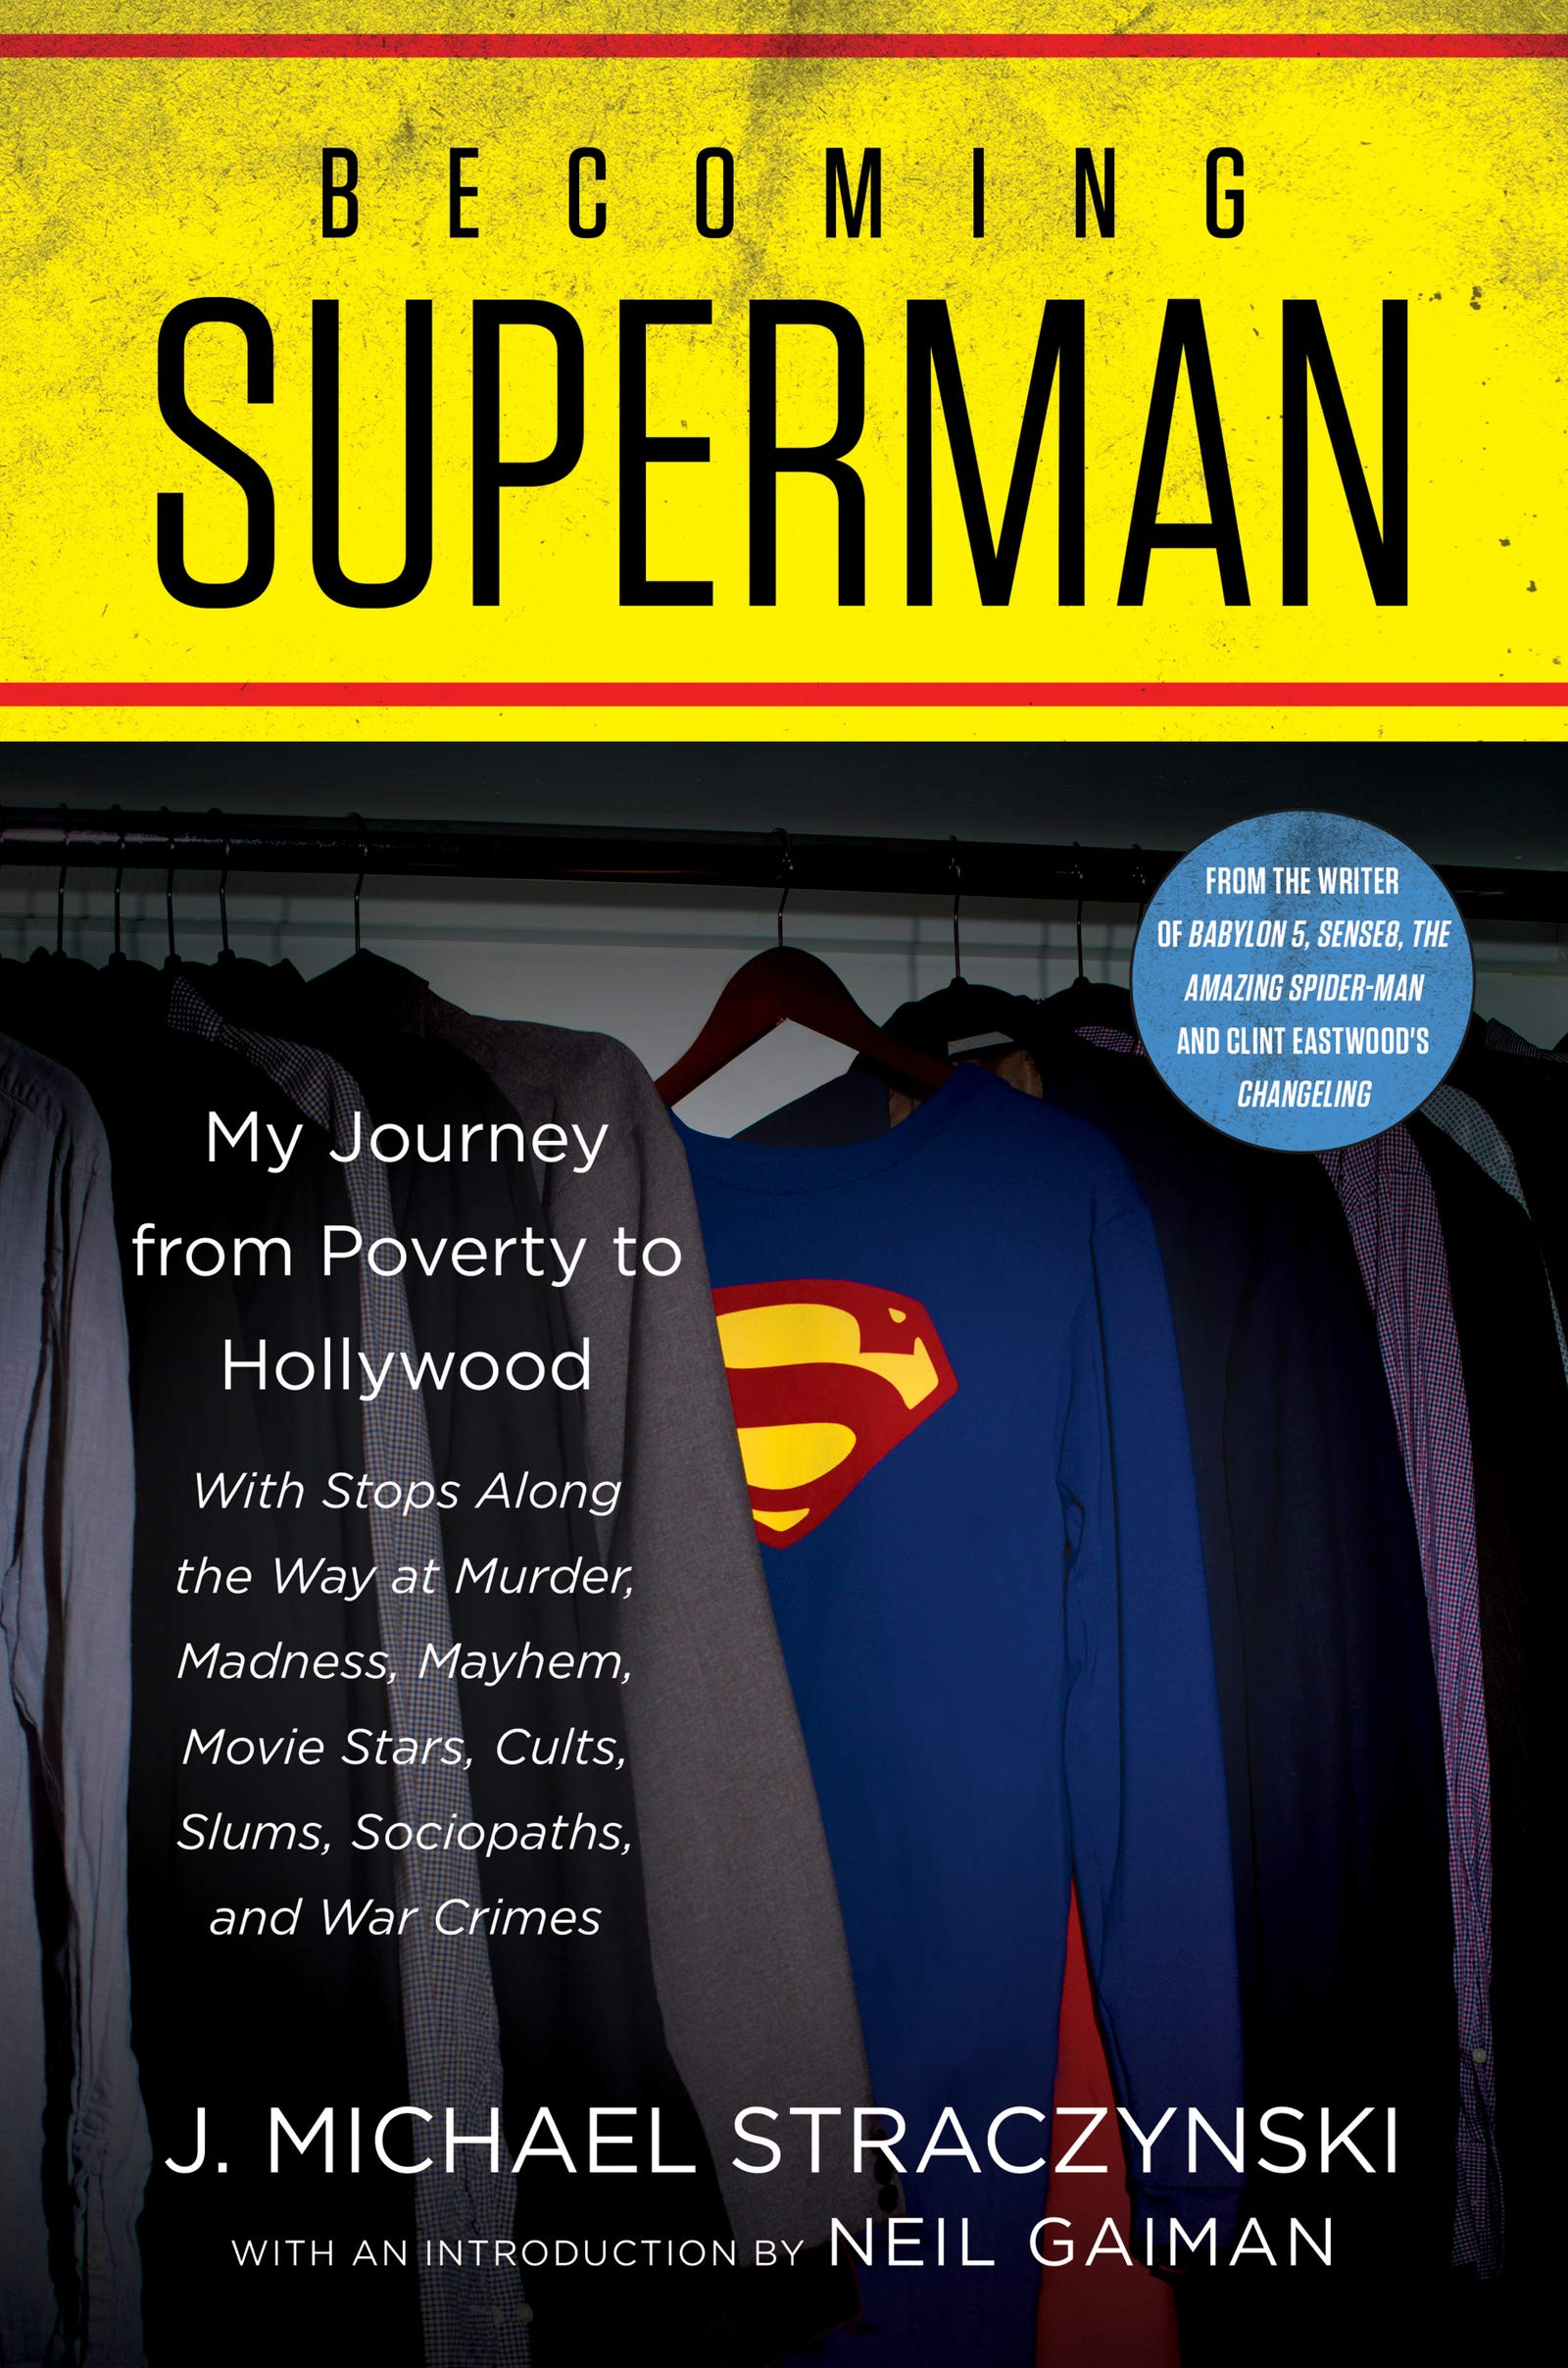 Friday Reads: Becoming Superman by J. Michael Straczynski